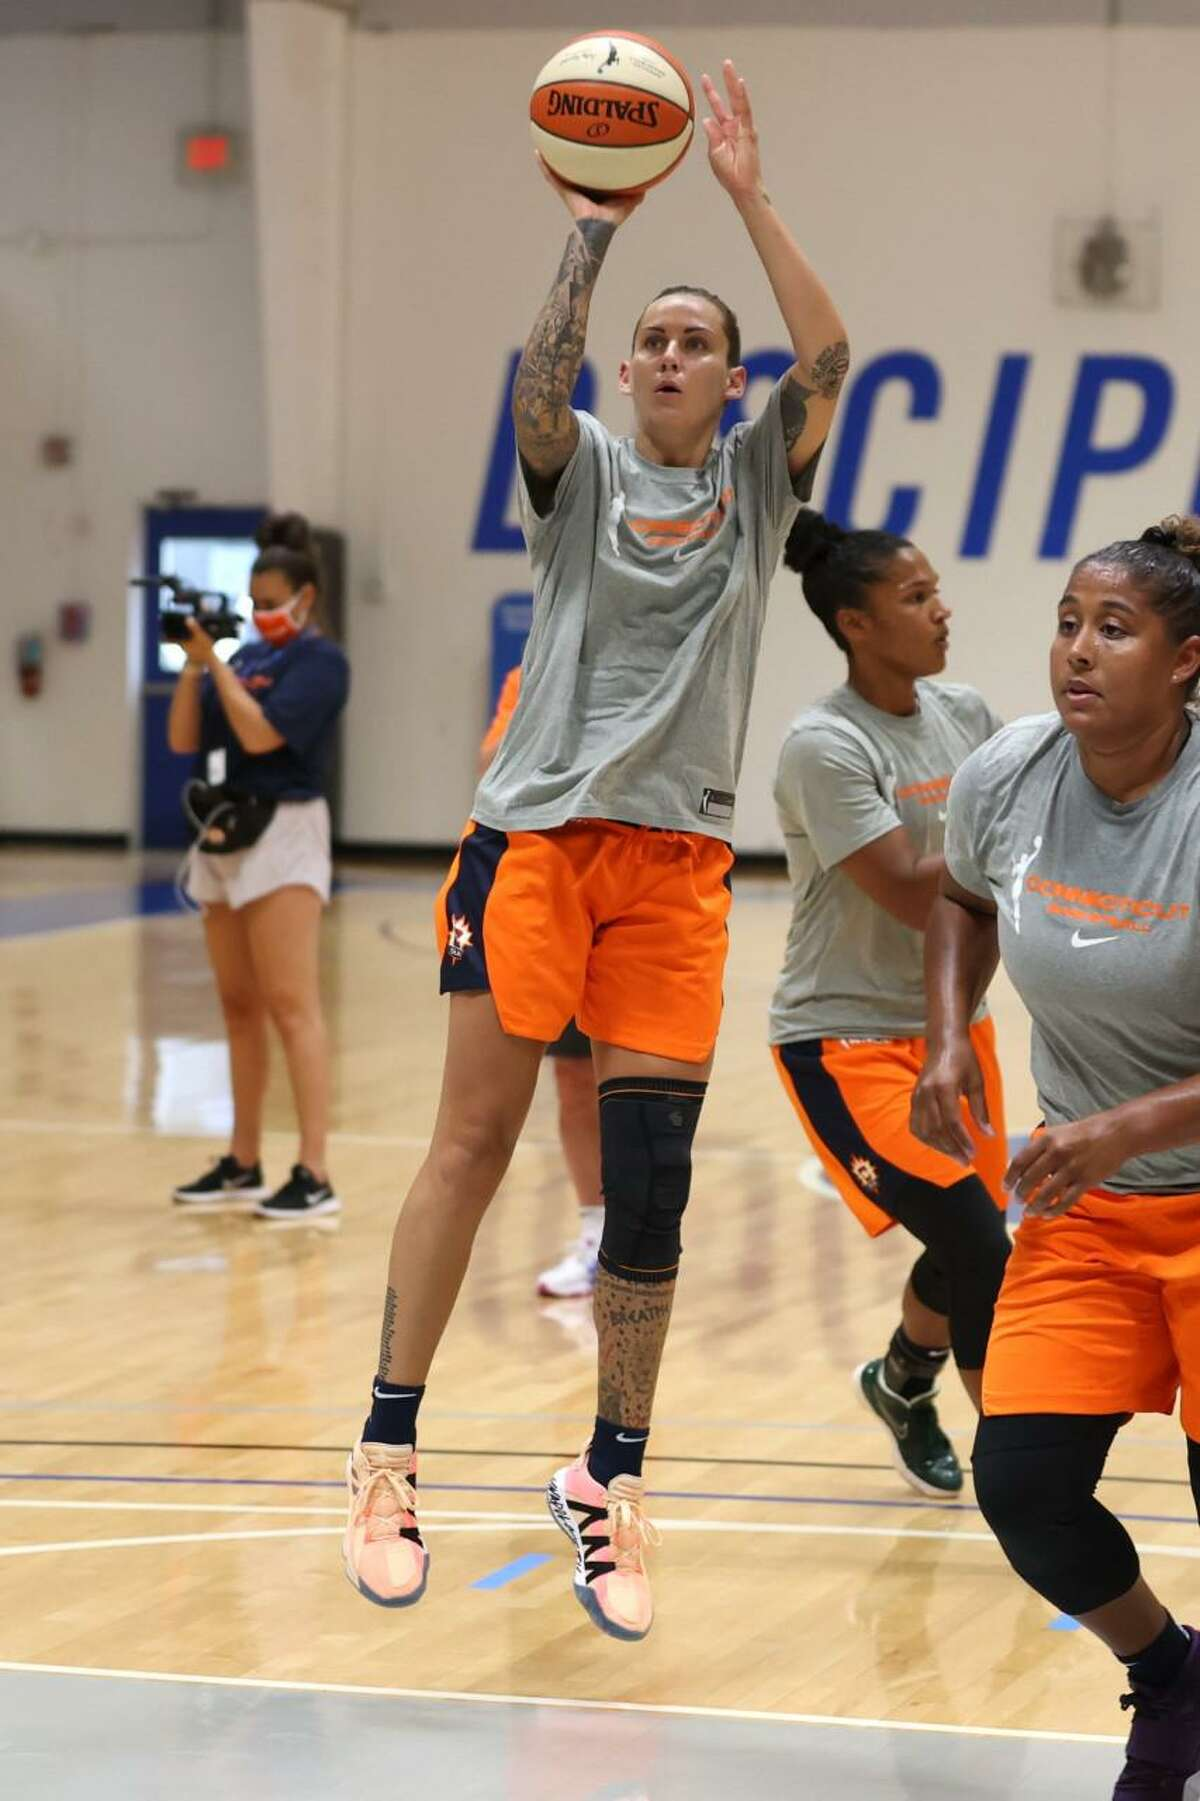 Connecticut Sun guard Jacki Gemelos is back in WNBA after a five-year absence.